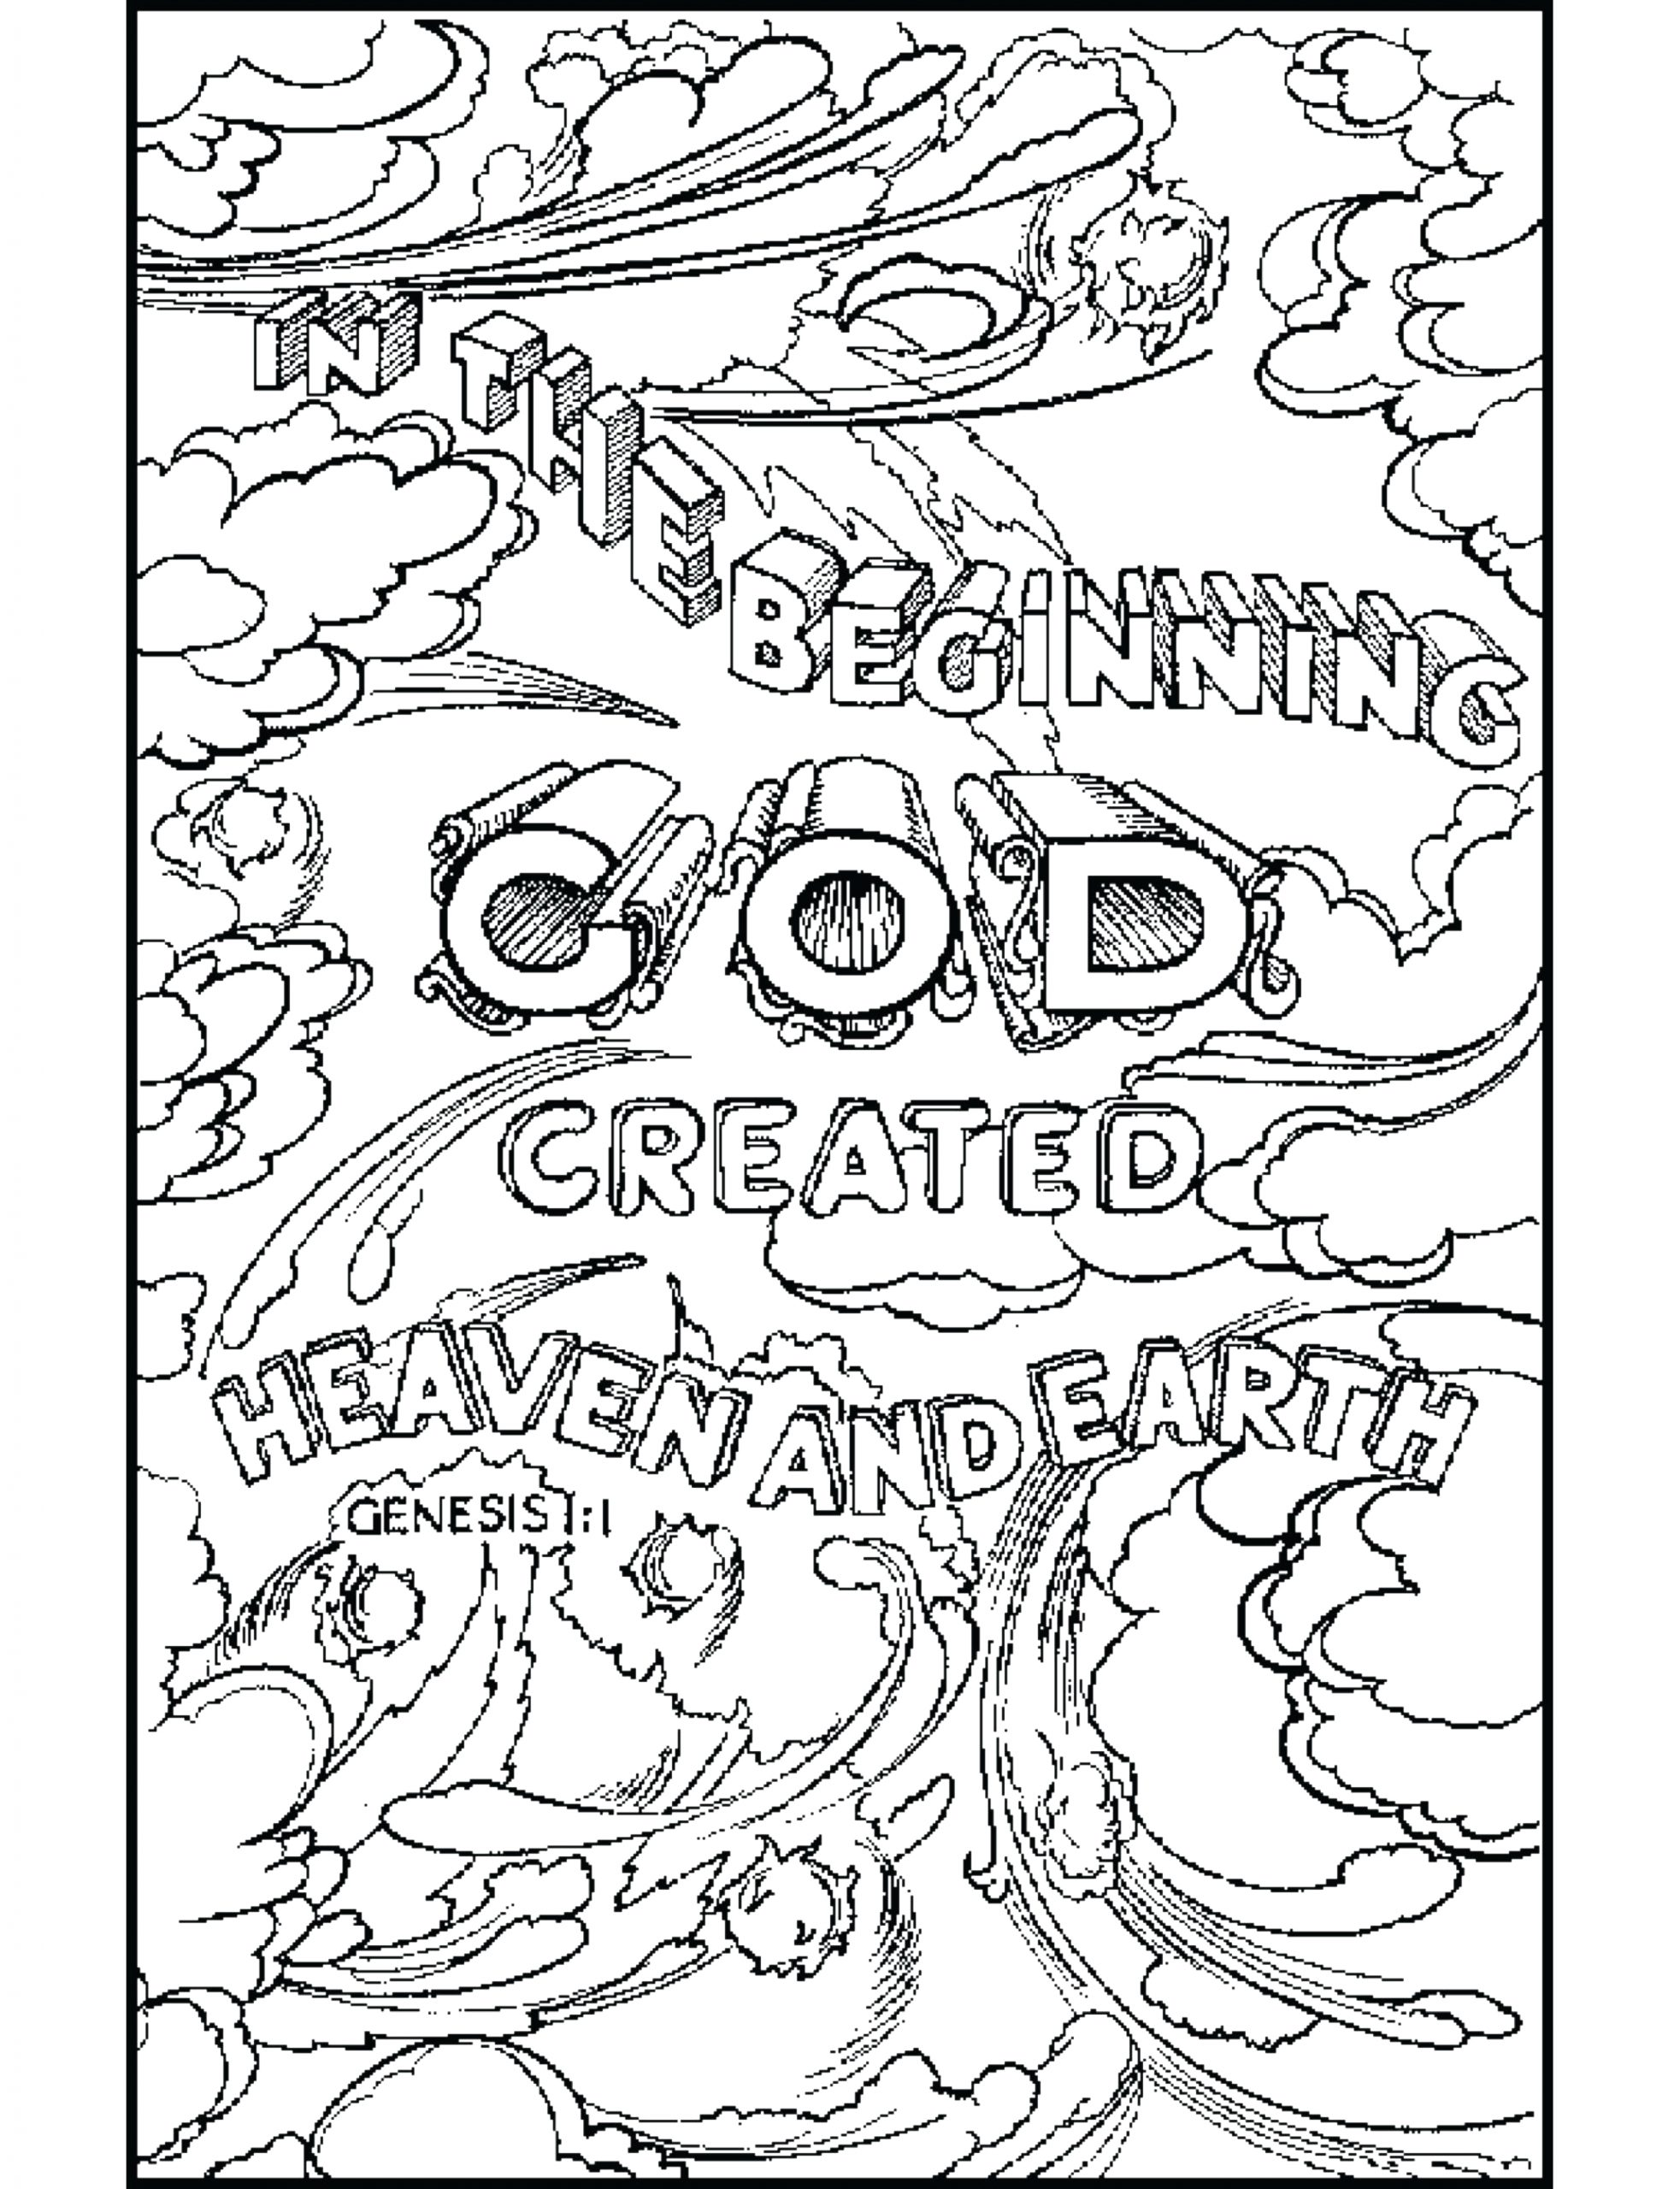 Free Bible Story Coloring Pages to Print Gideon Bible Coloring Pages at Getcolorings